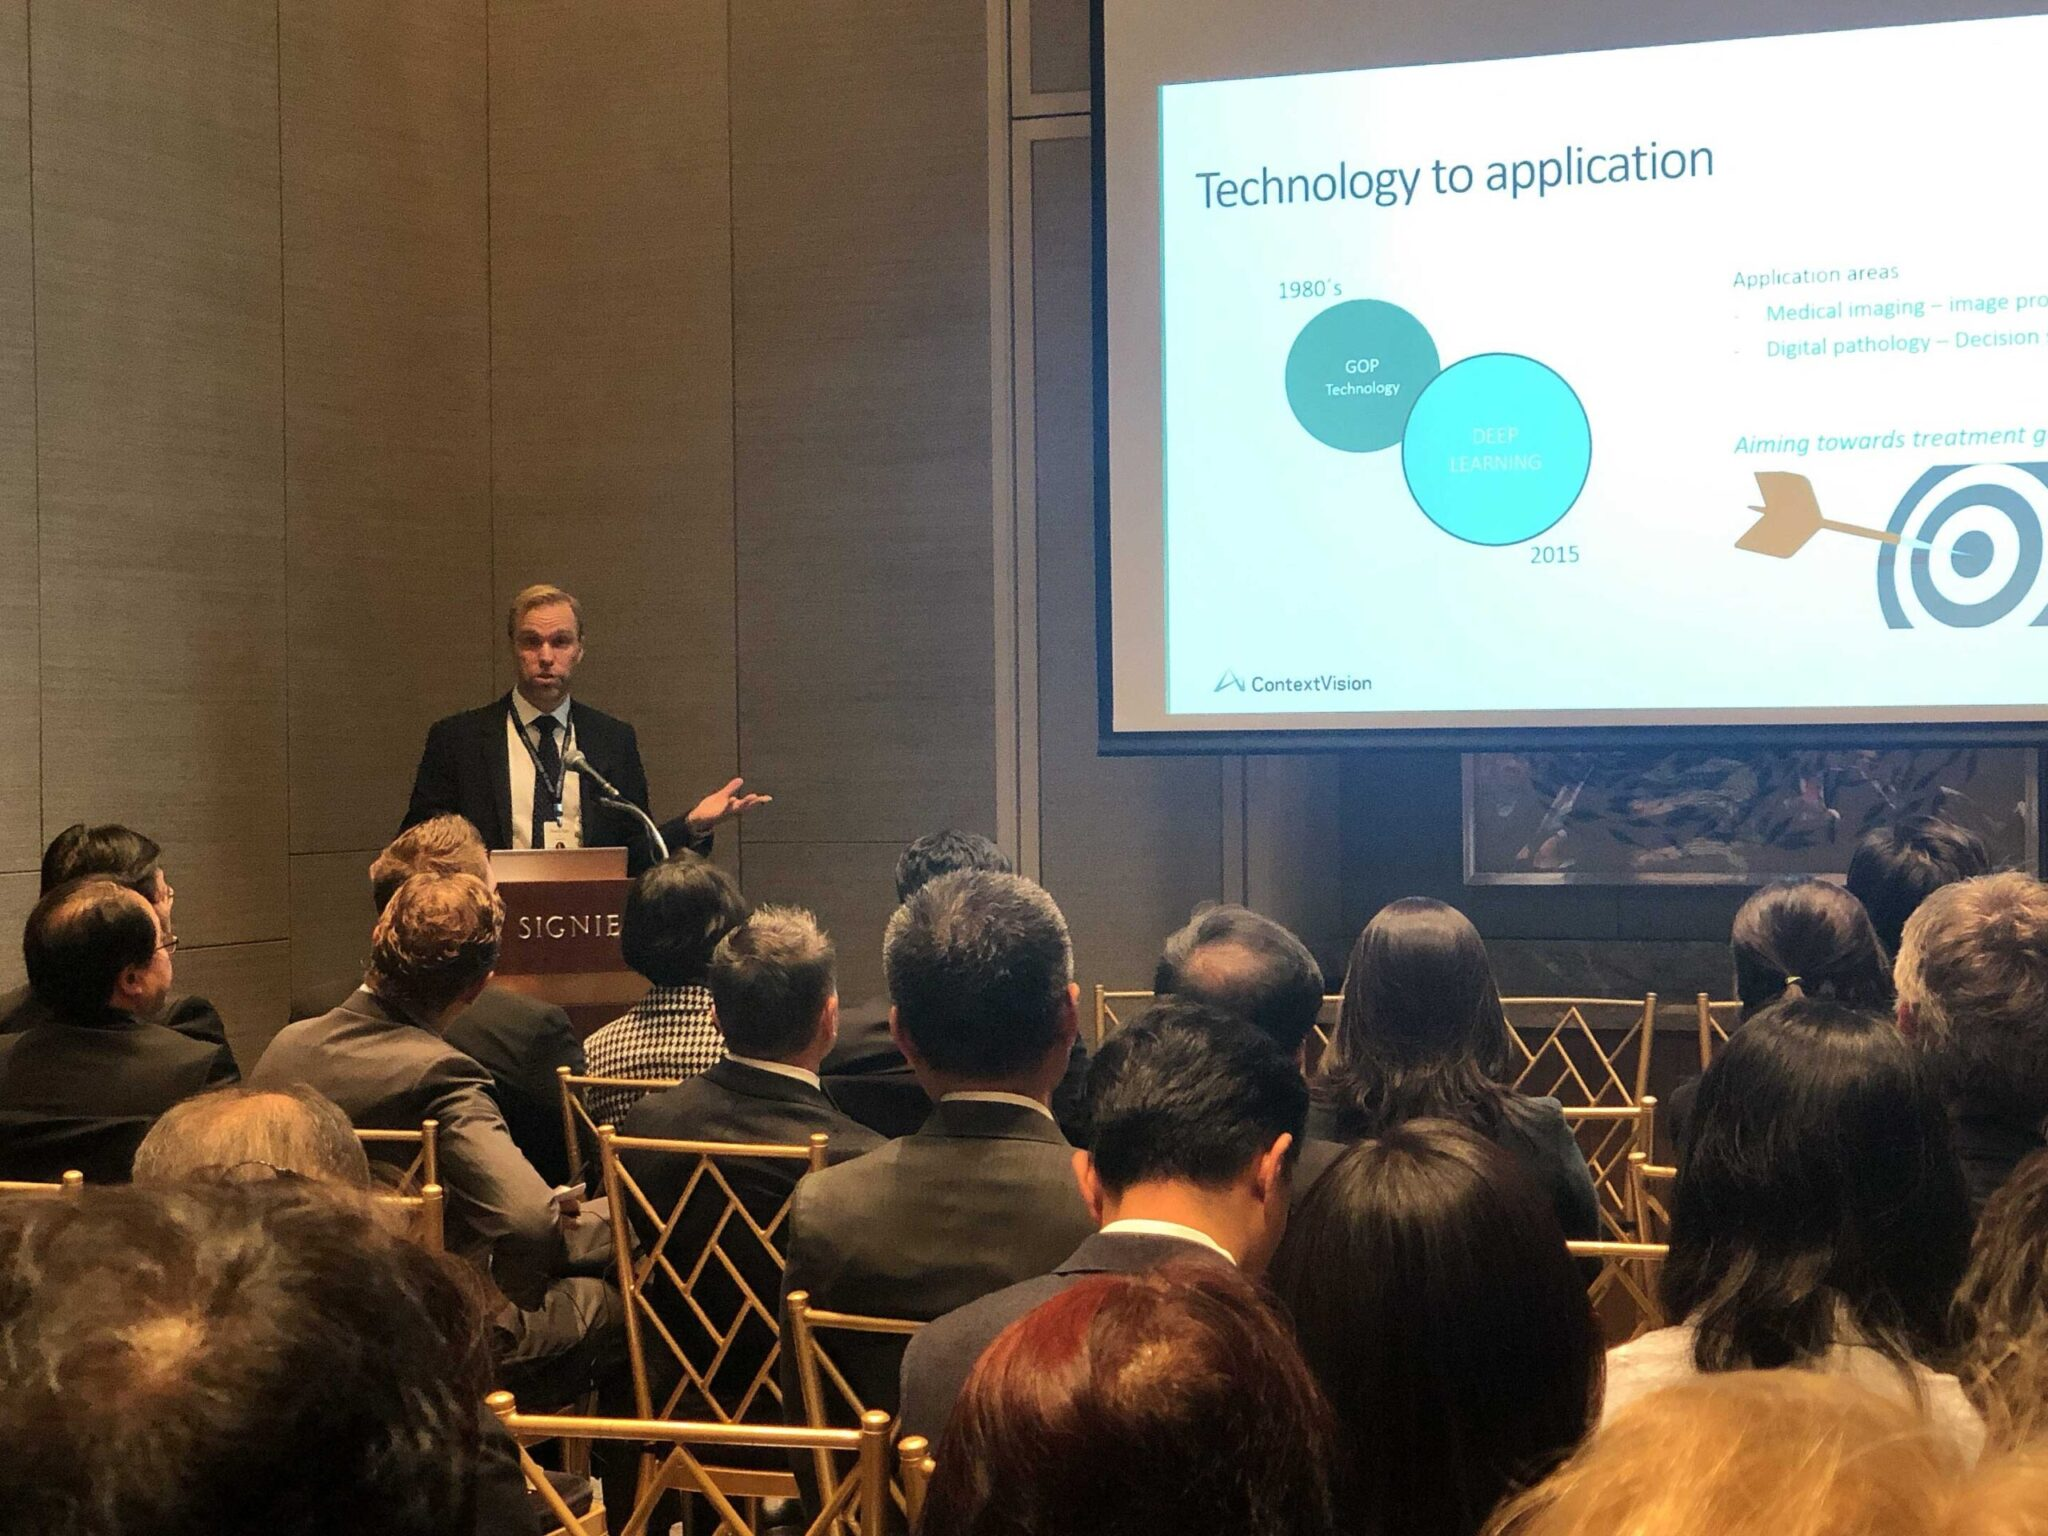 ContextVision's CEO Fredrik Palm discuss innovation around AI-powered diagnostic imaging and digital pathology at Sweden Korea Business Summit